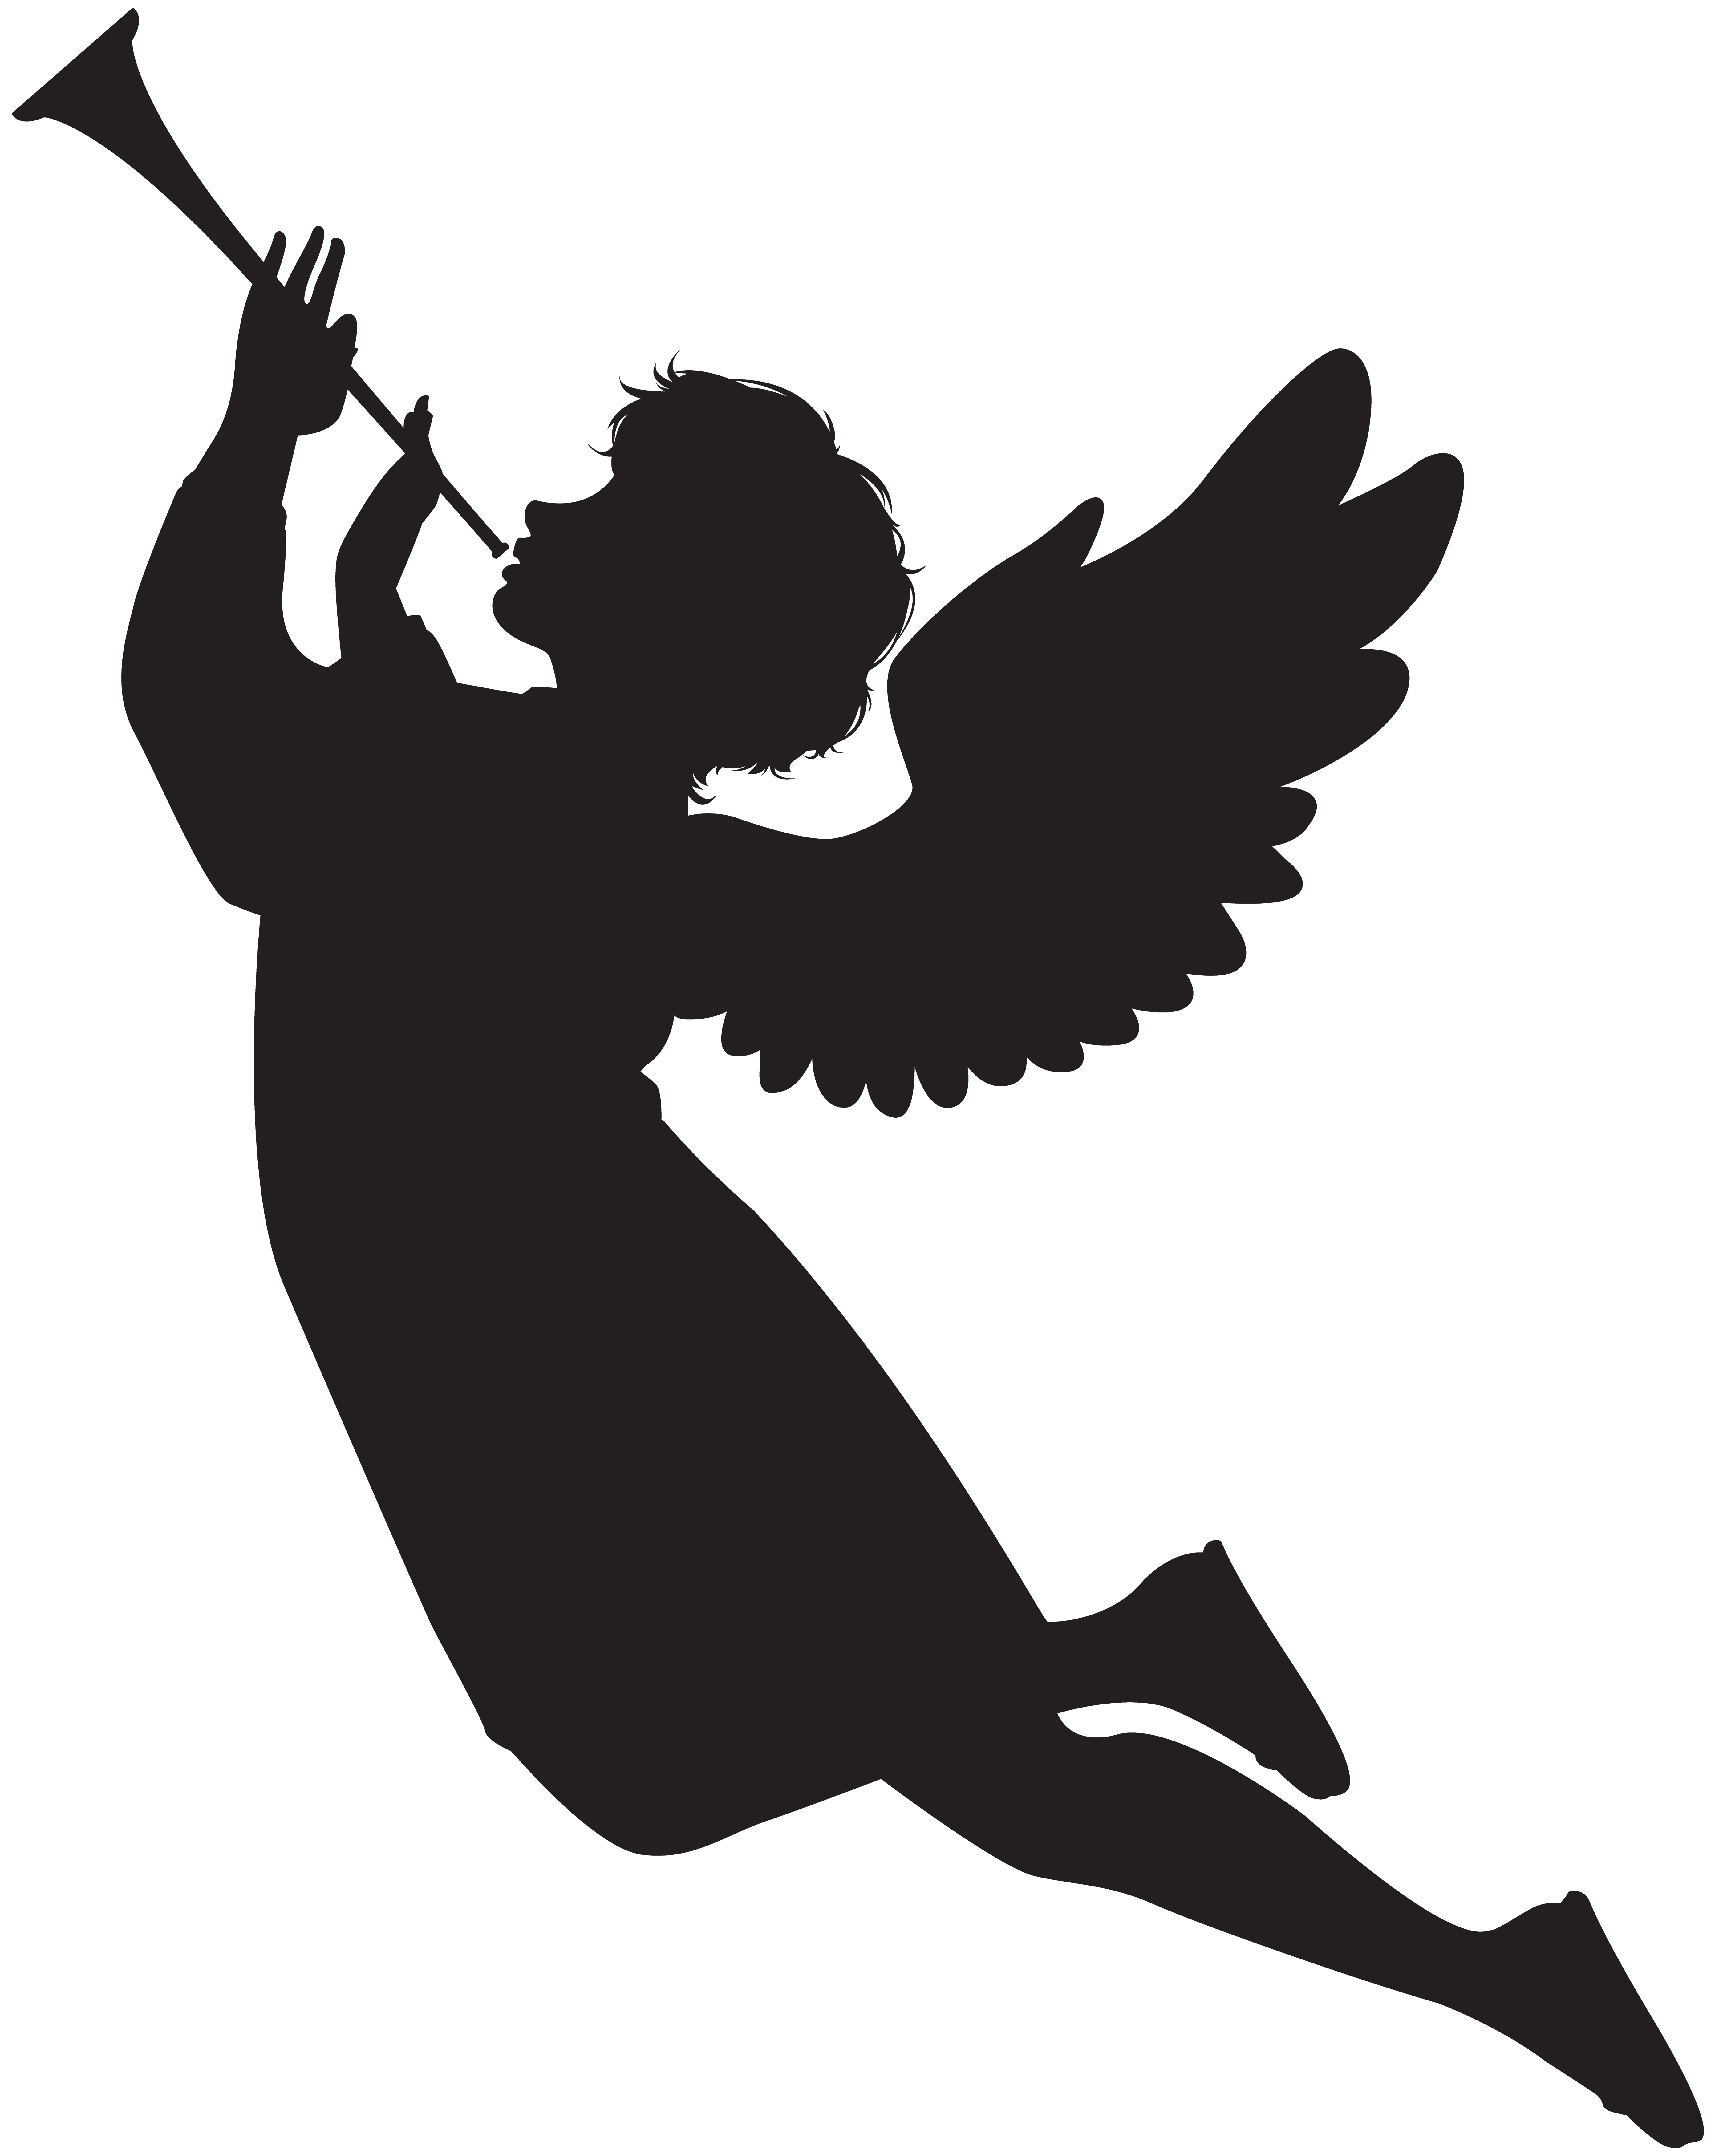 Angel Silhouette Png.